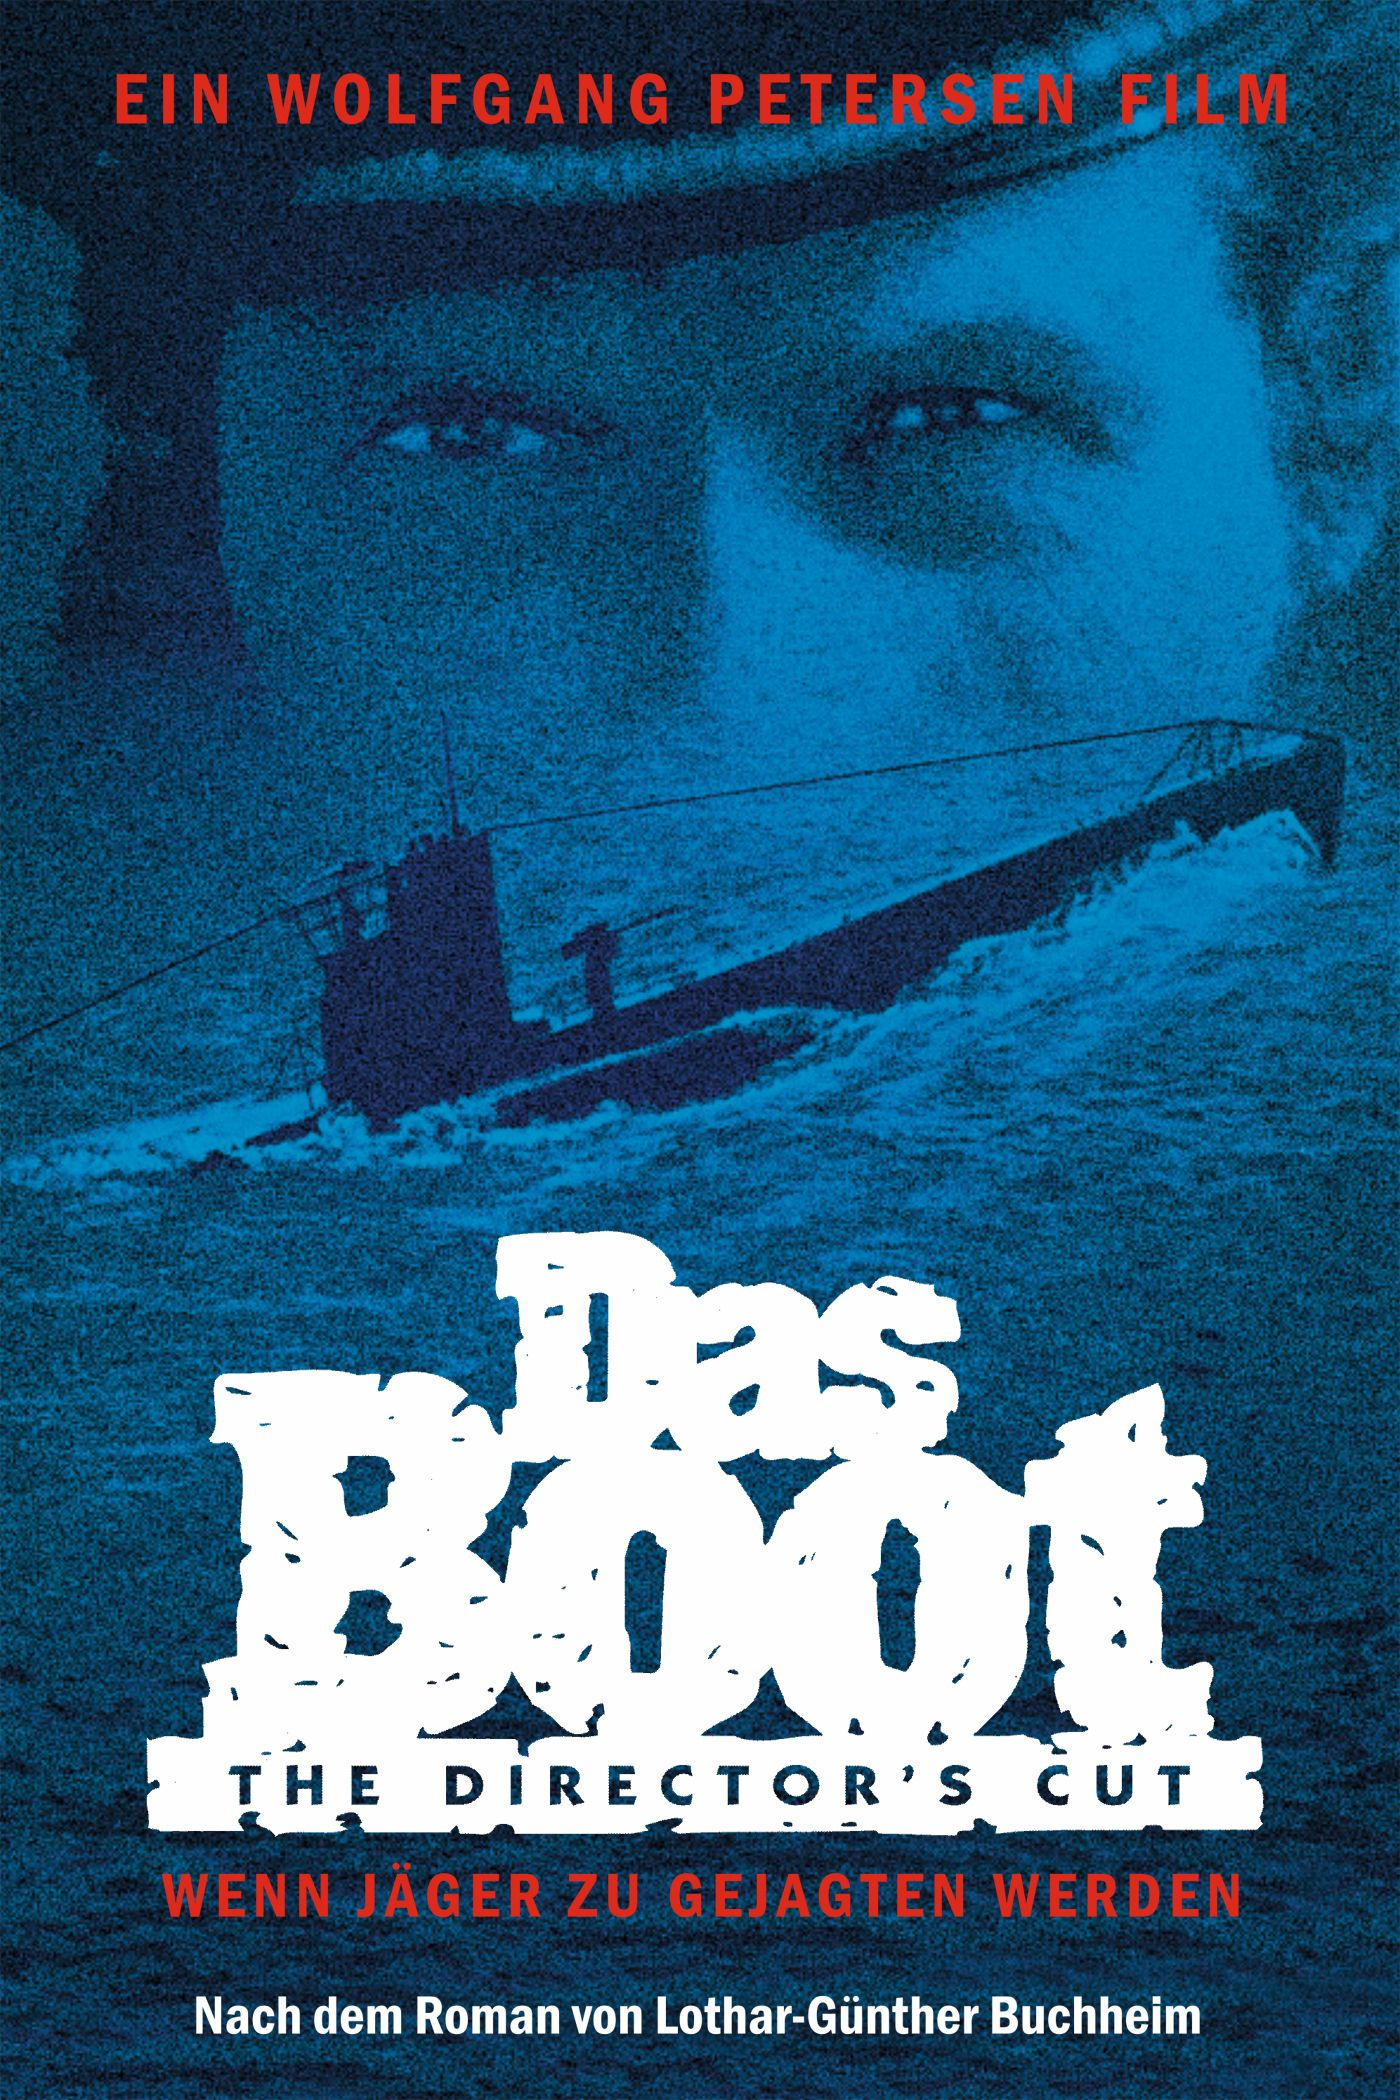 das boot a war movie to Das boot this action thriller features a german u-boat's captain and his inexperienced crew, who have to survive the fierce battles against the allies' navy forces.